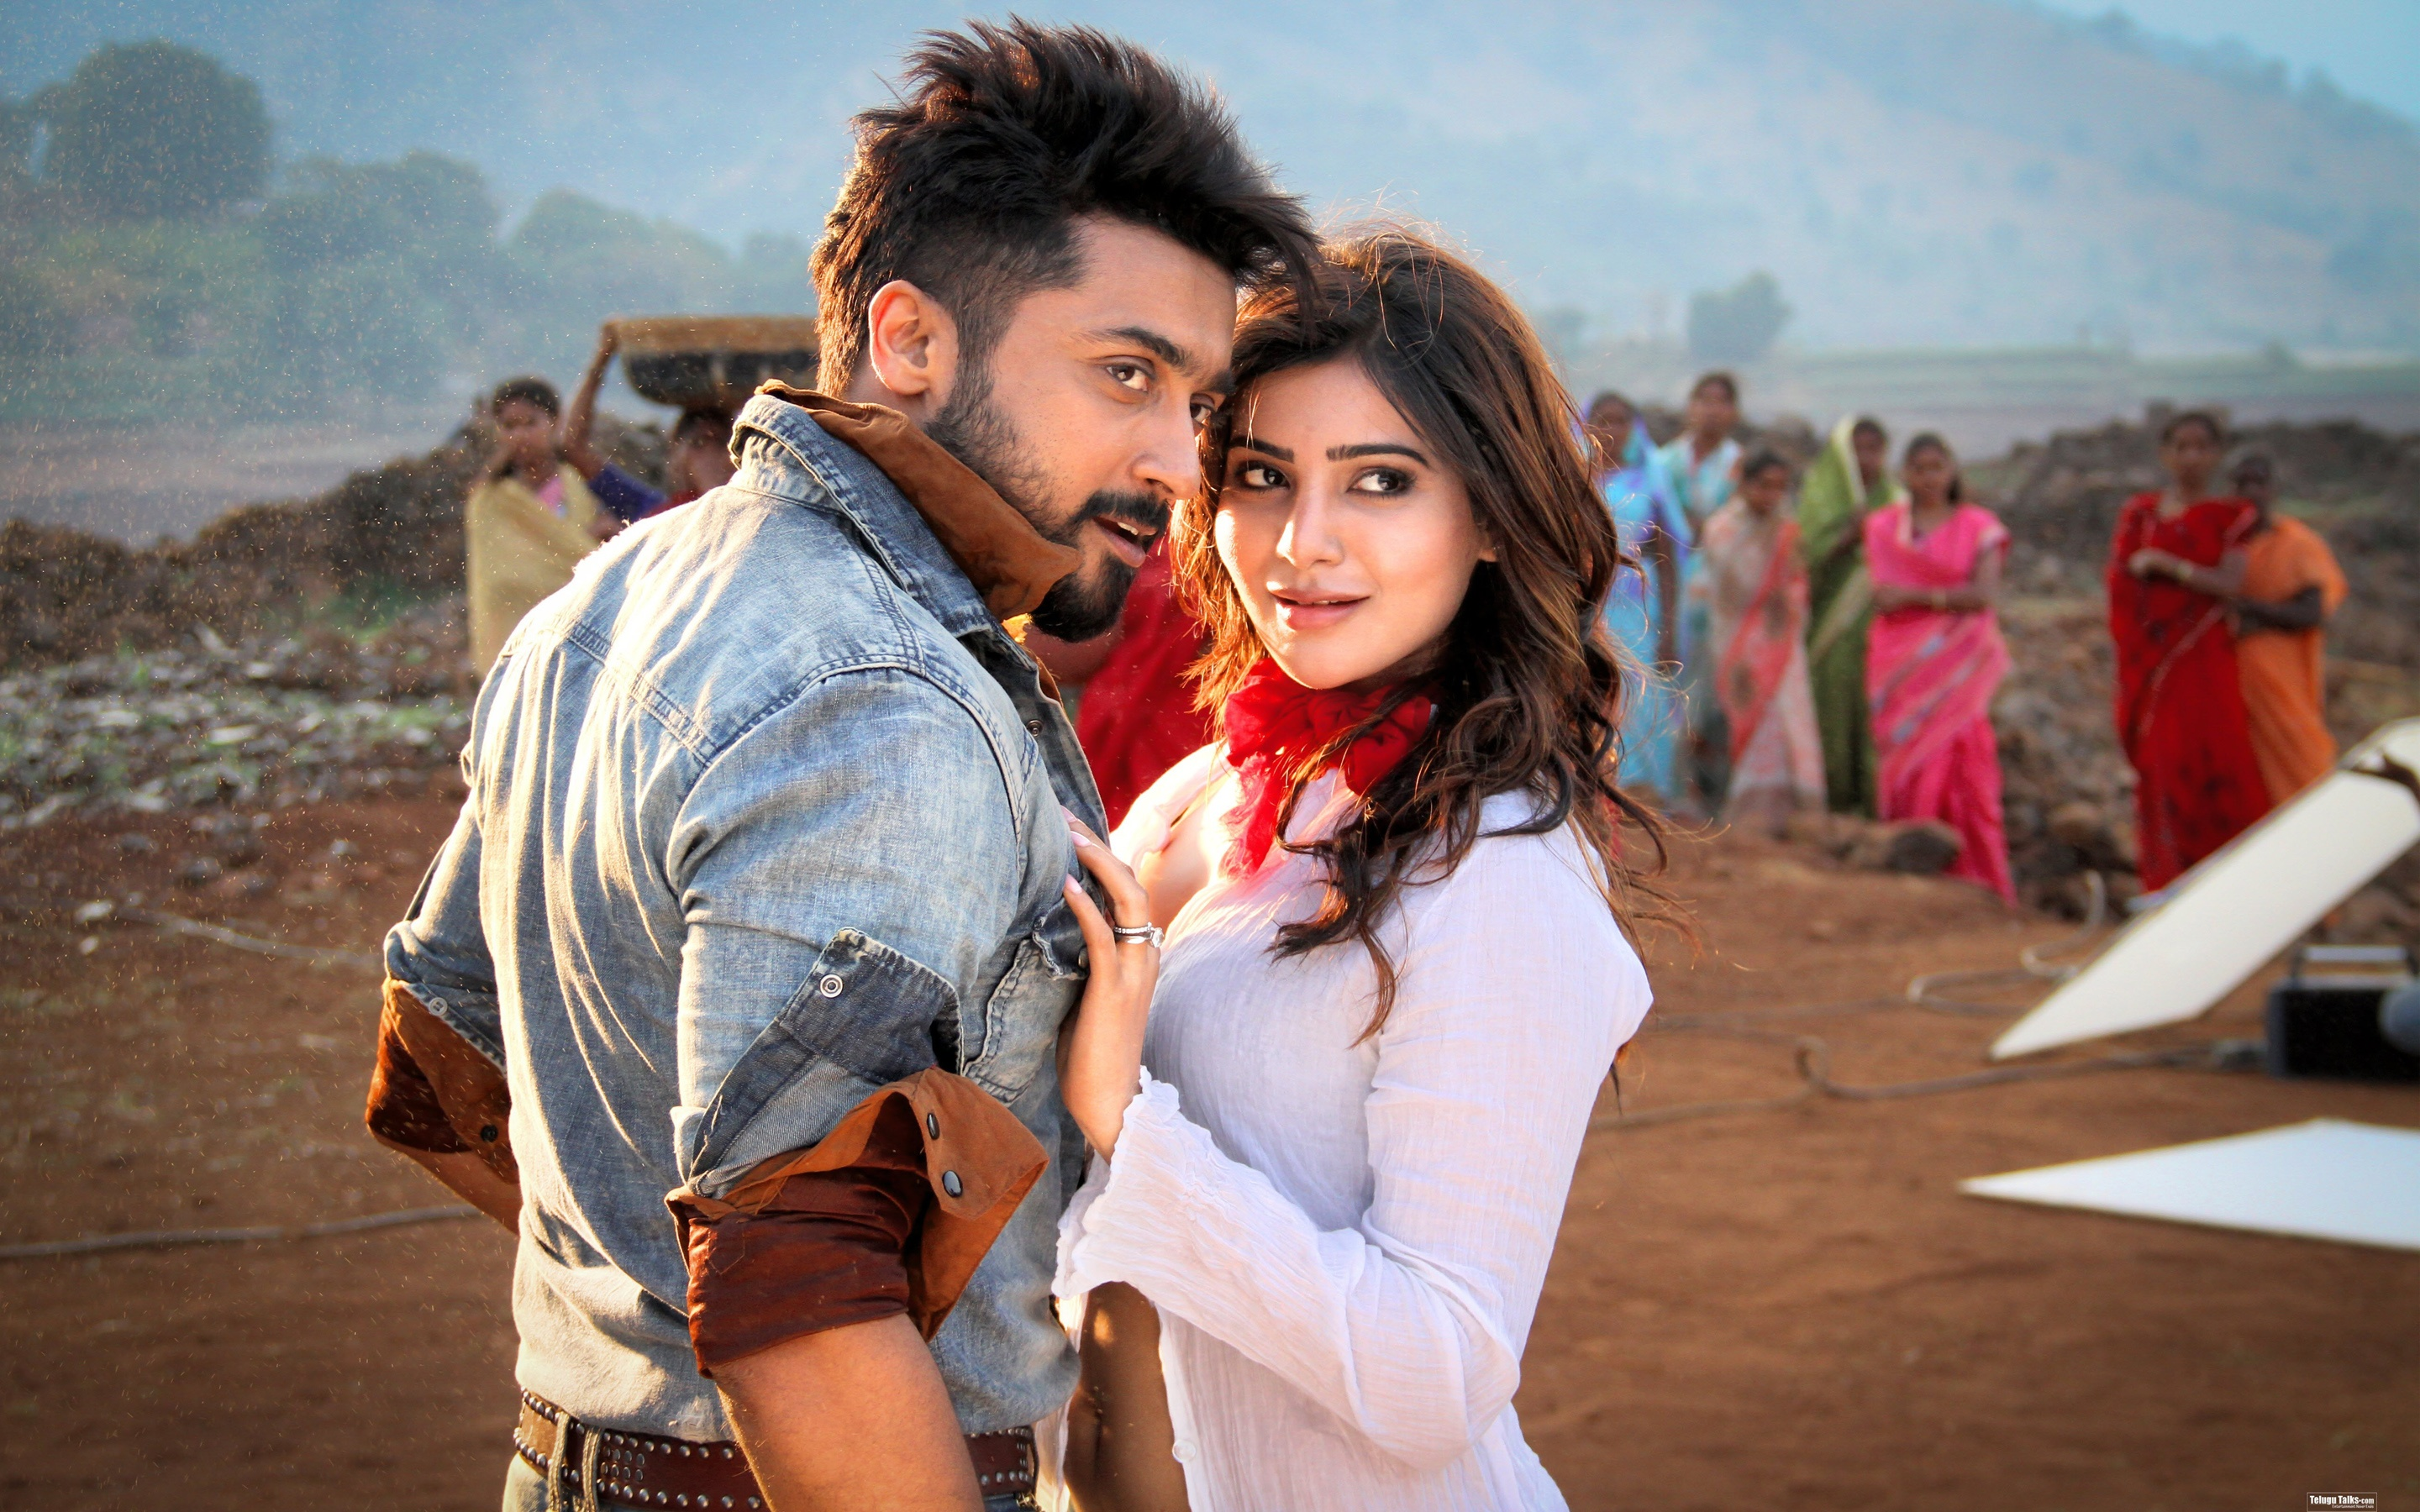 surya samantha anjaan wallpapers in jpg format for free download